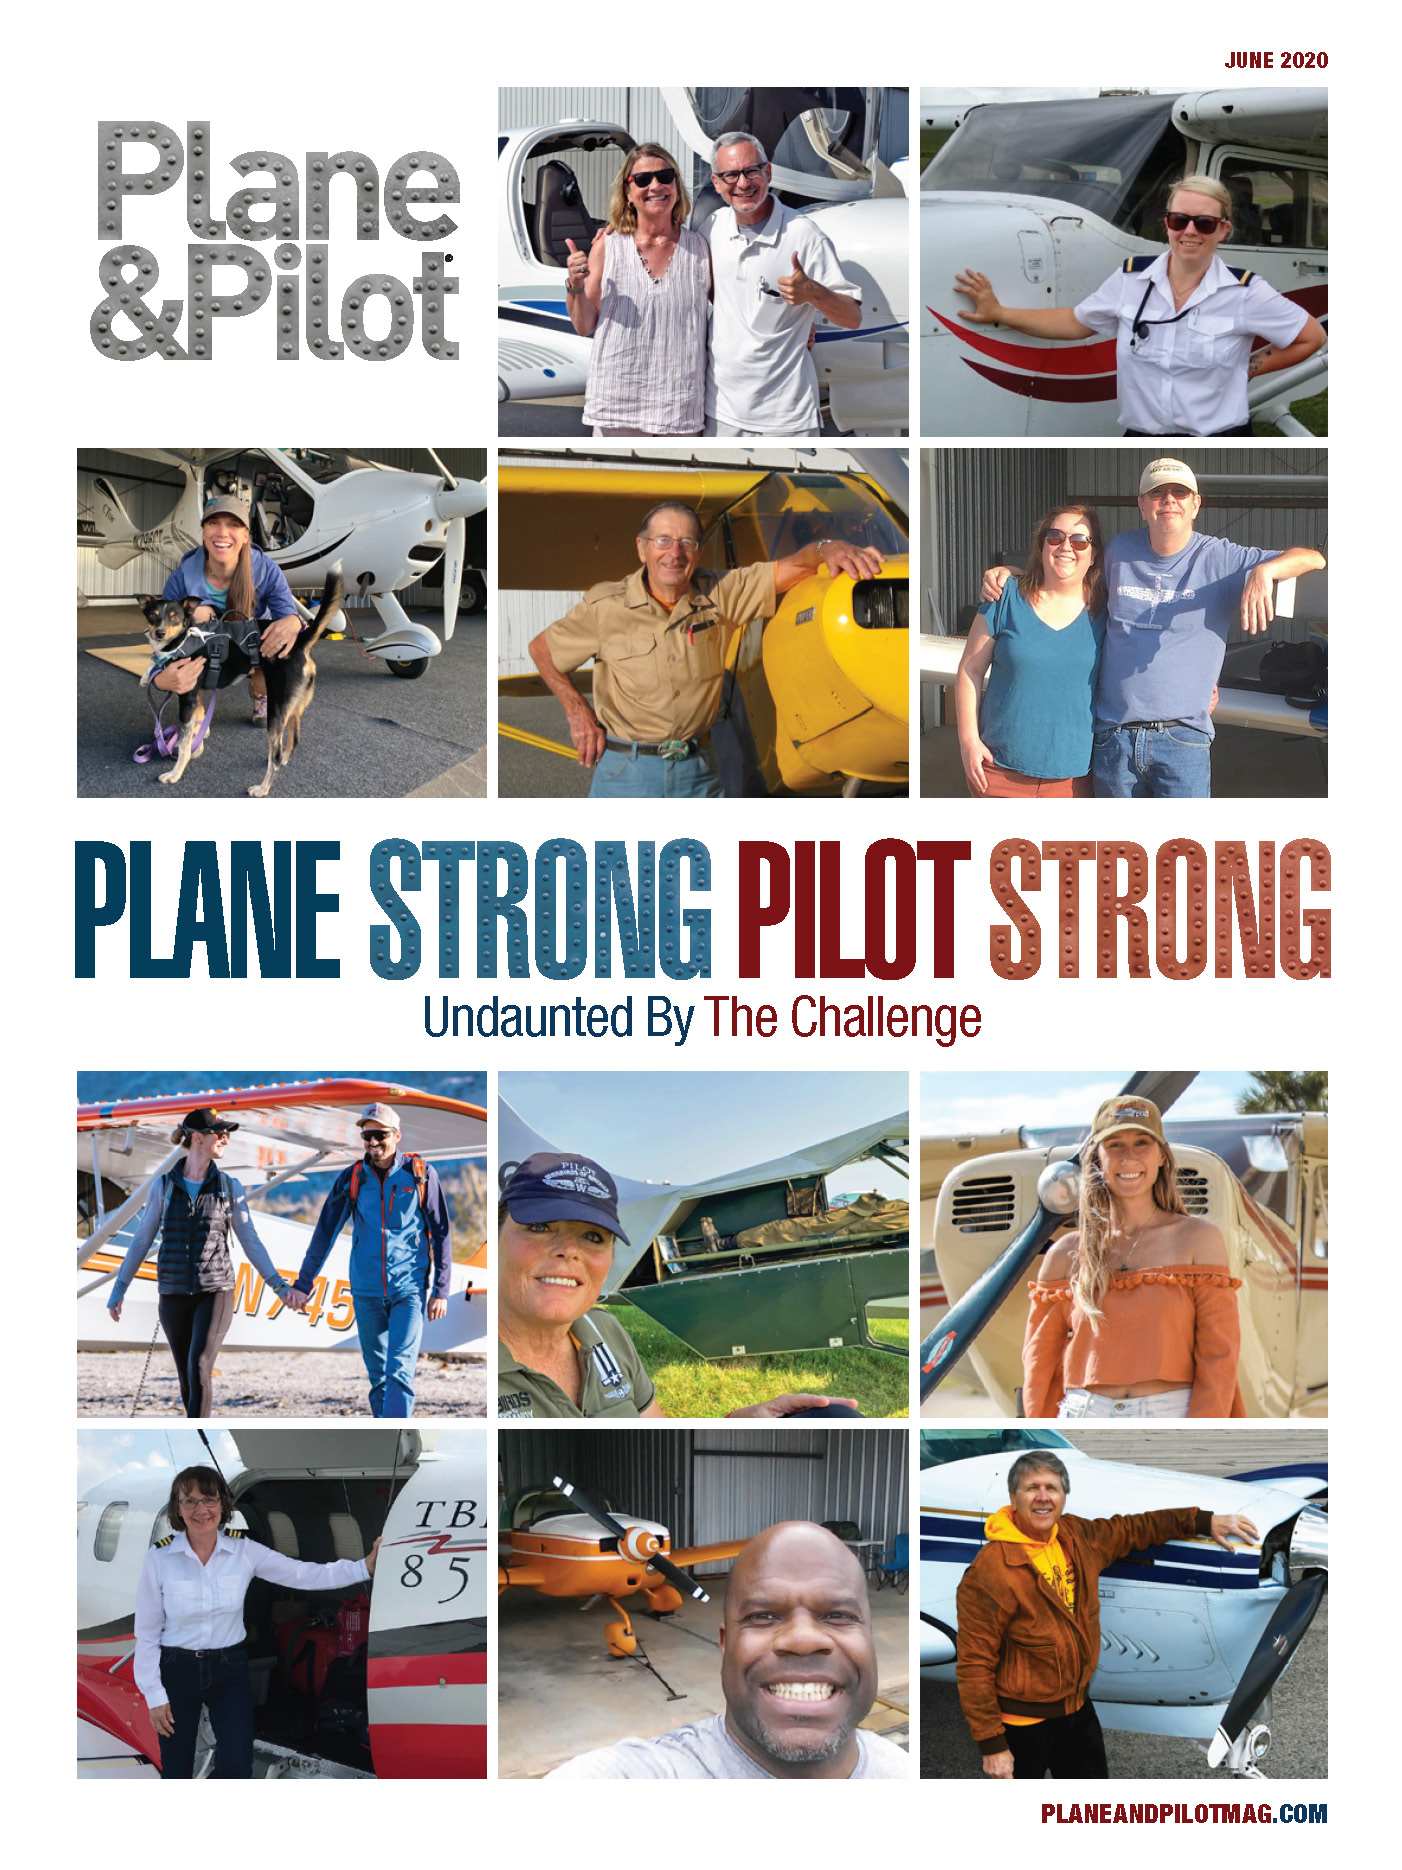 Plane Strong, Pilot Strong: Undaunted In The Face Of Challenge